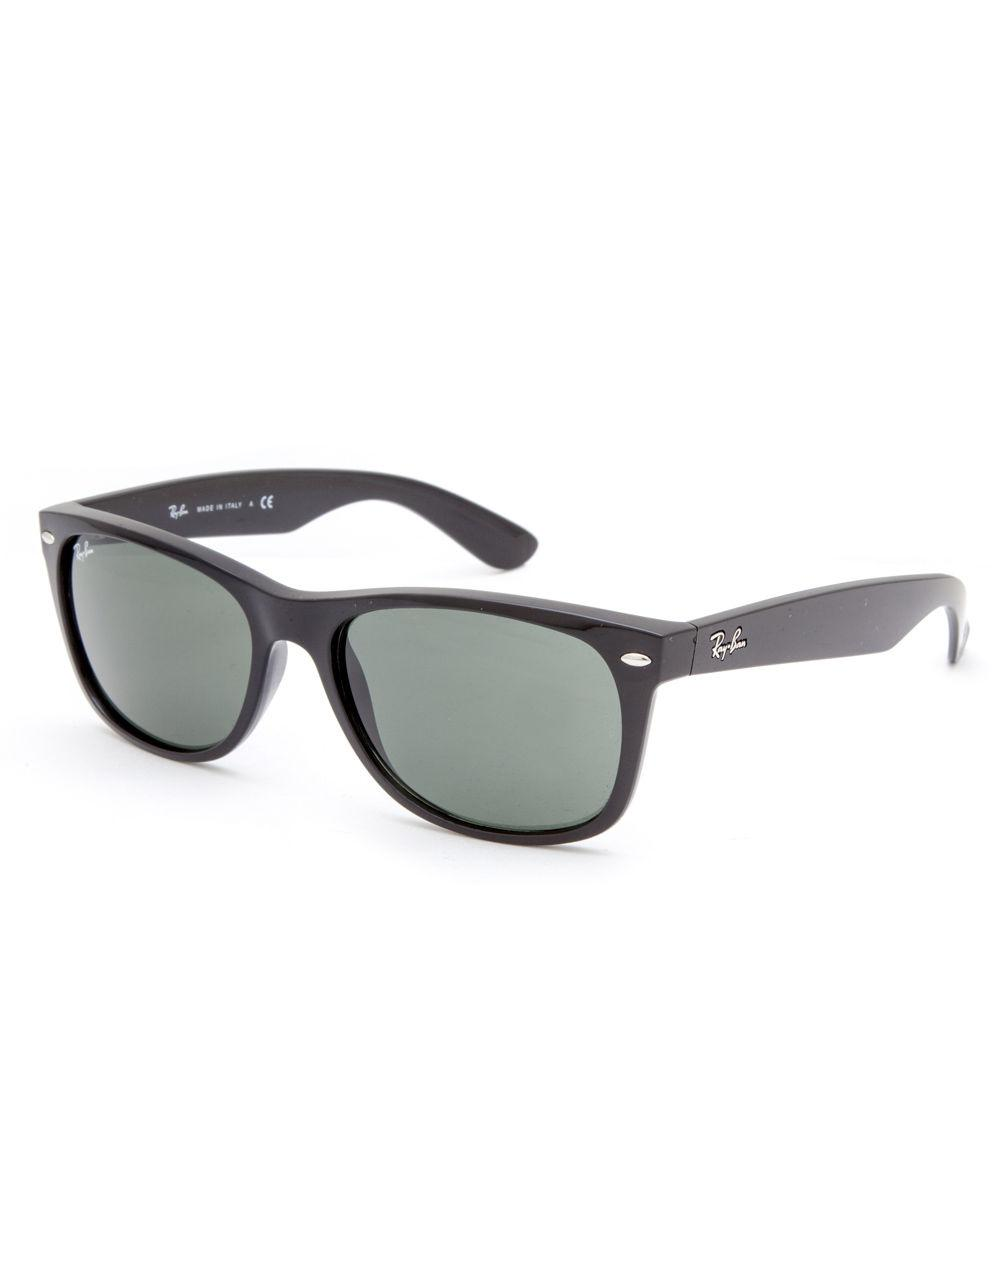 ee13685ac2c Lyst - Ray-Ban New Wayfarer Sunglasses in Black for Men - Save 12%